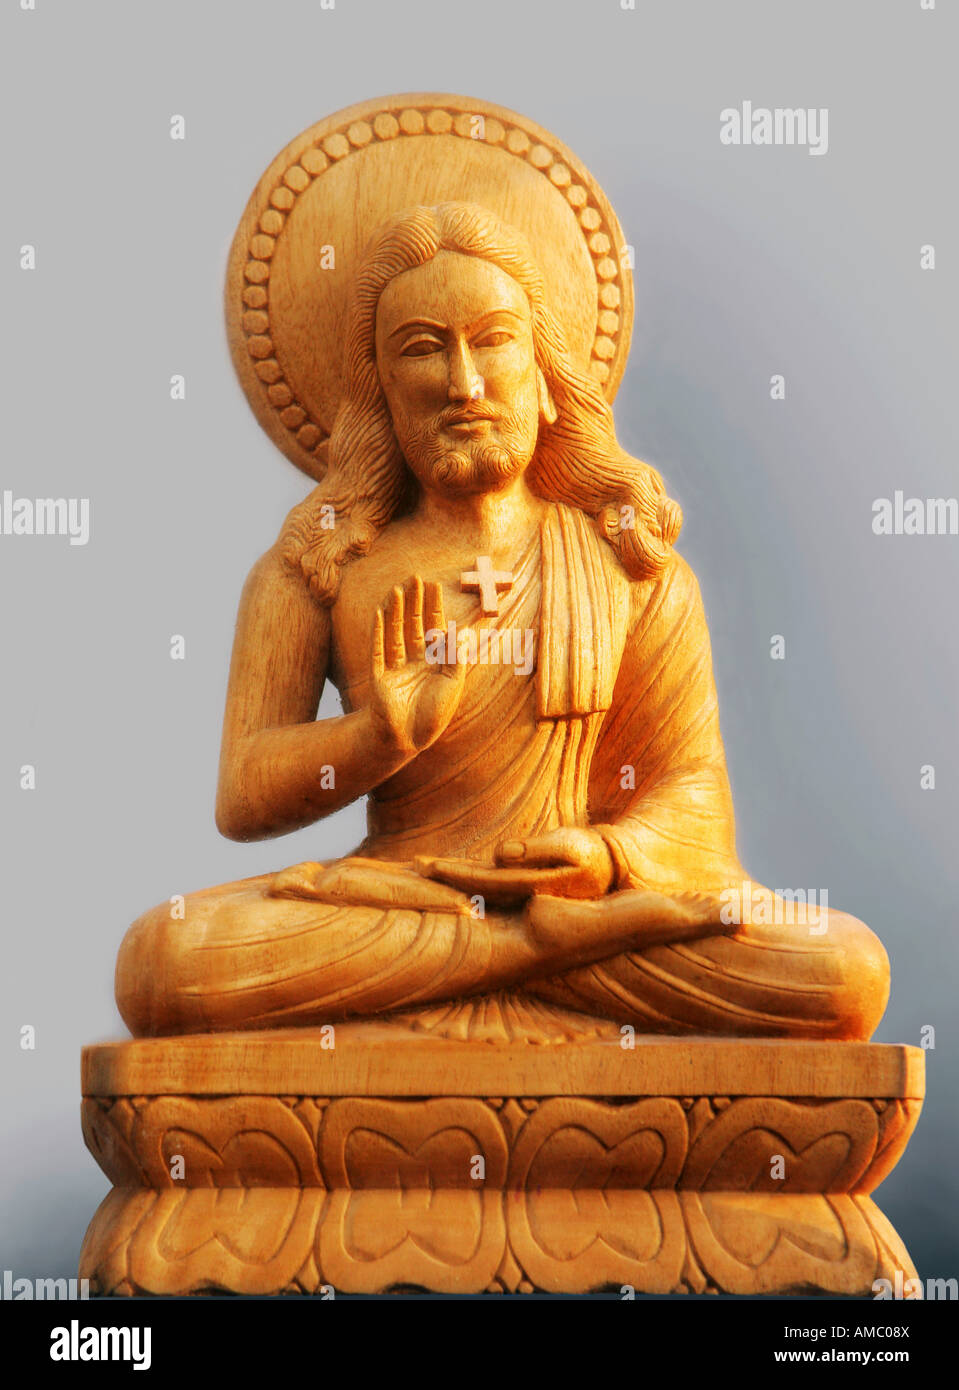 India, Patna, 25.11.2007: statue of Jesus Christ in a buddhist sitting position - Stock Image